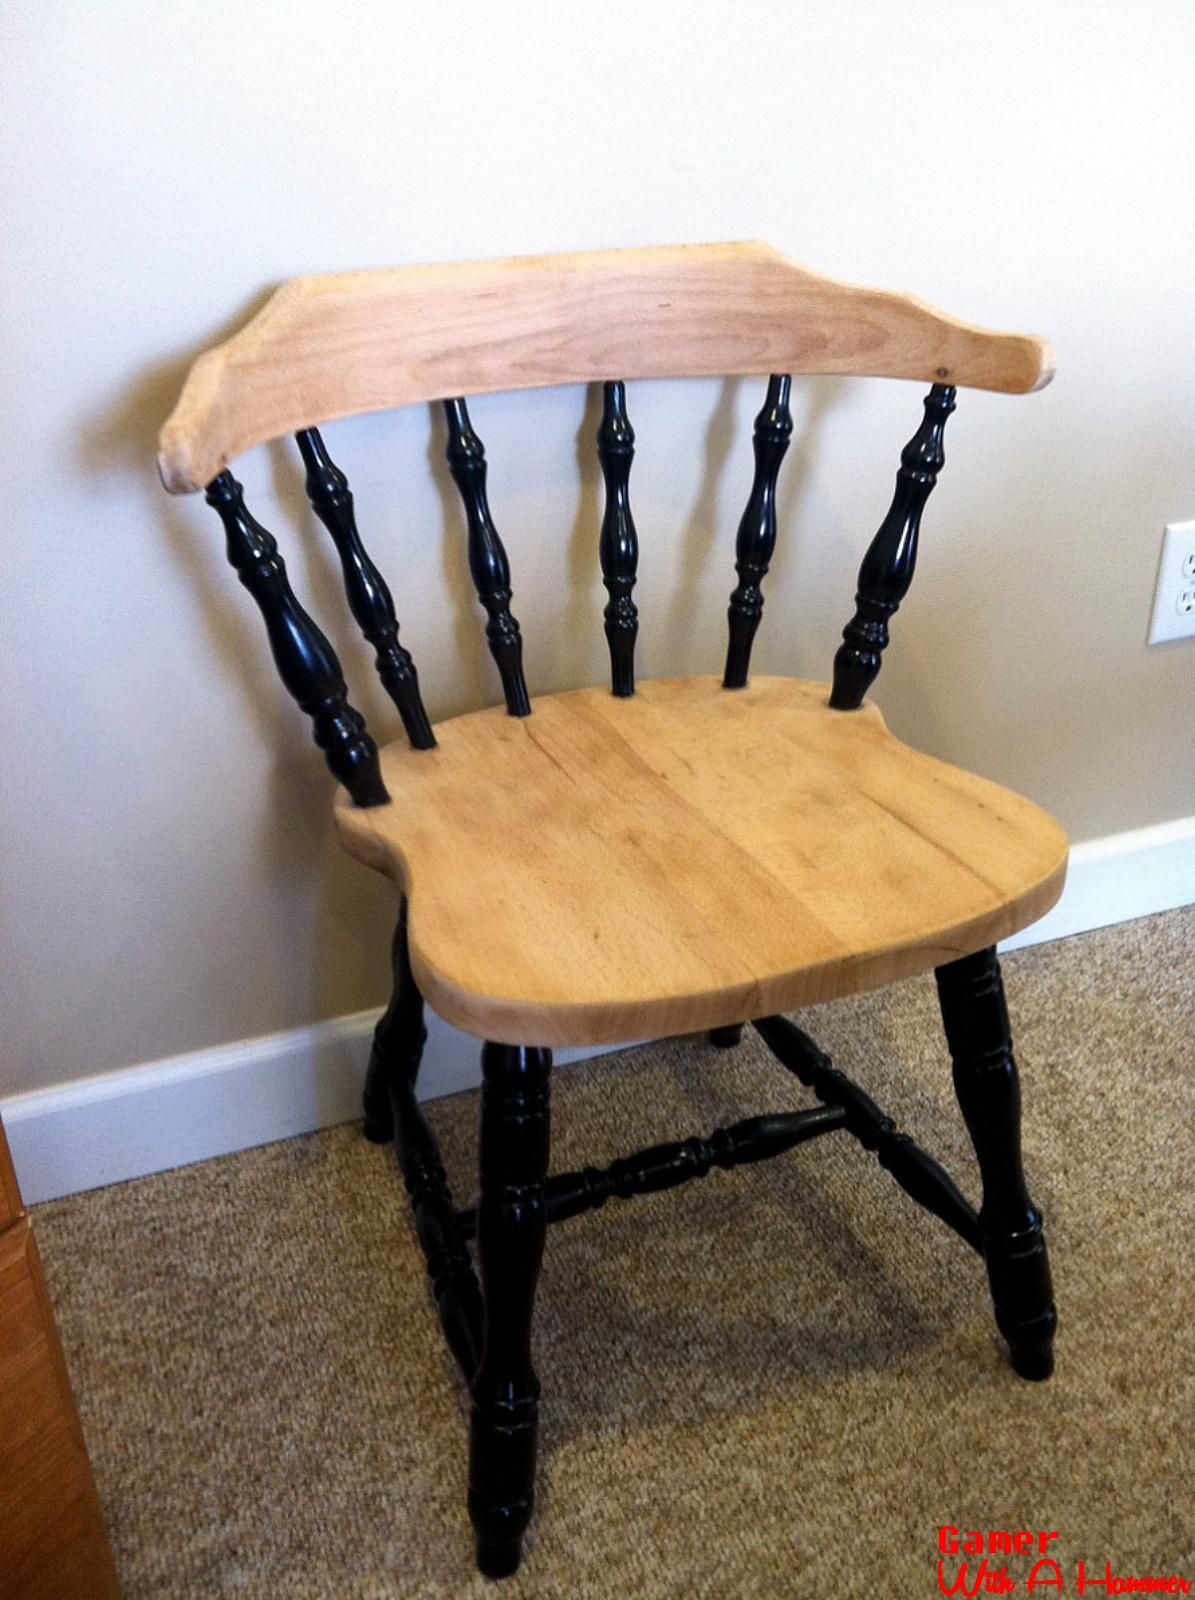 A simple set of chairs furniture repurposed furniture